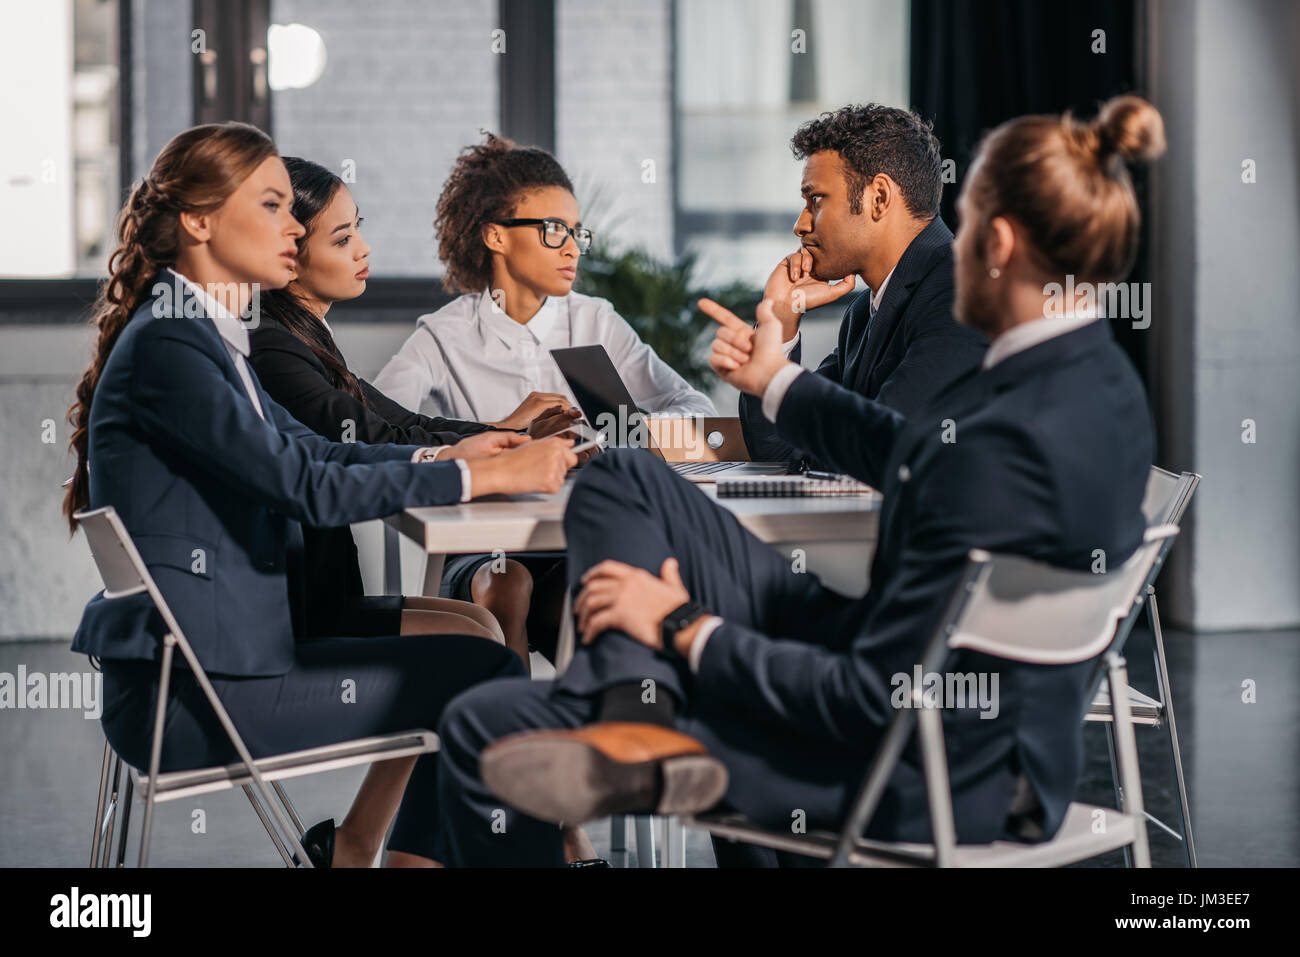 young coworkers in formalwear arguing at business meeting in office, business team meeting - Stock Image